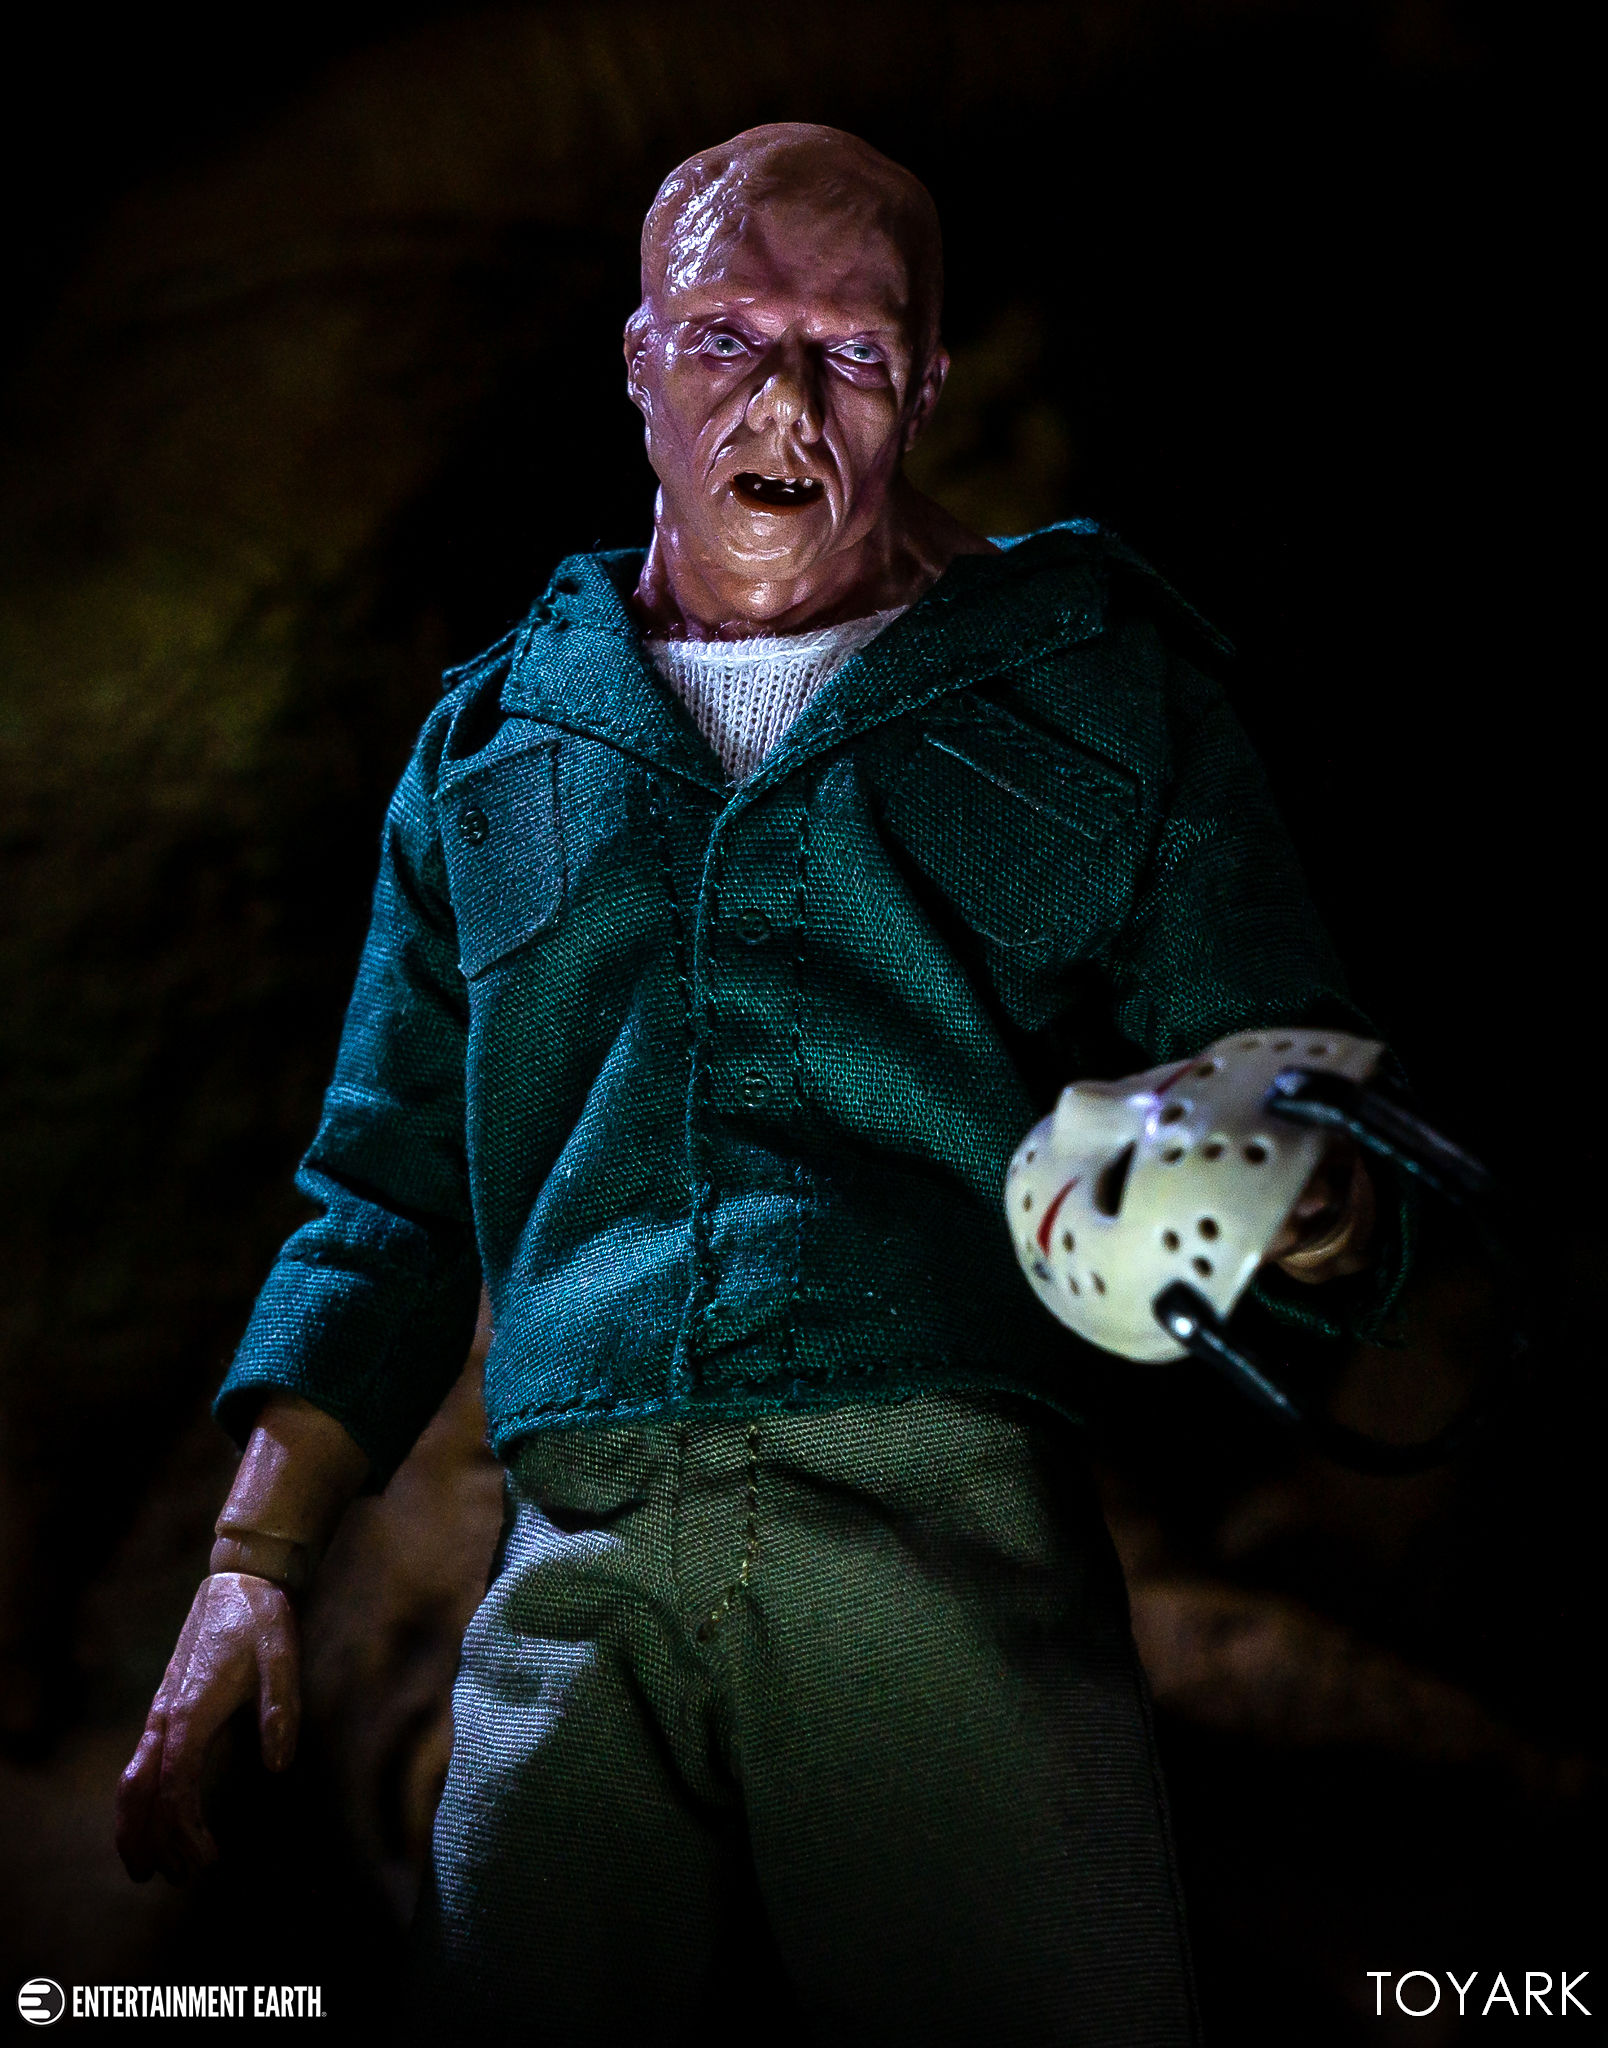 https://news.toyark.com/wp-content/uploads/sites/4/2019/04/One12-Part-3-Jason-Voorhees-045.jpg